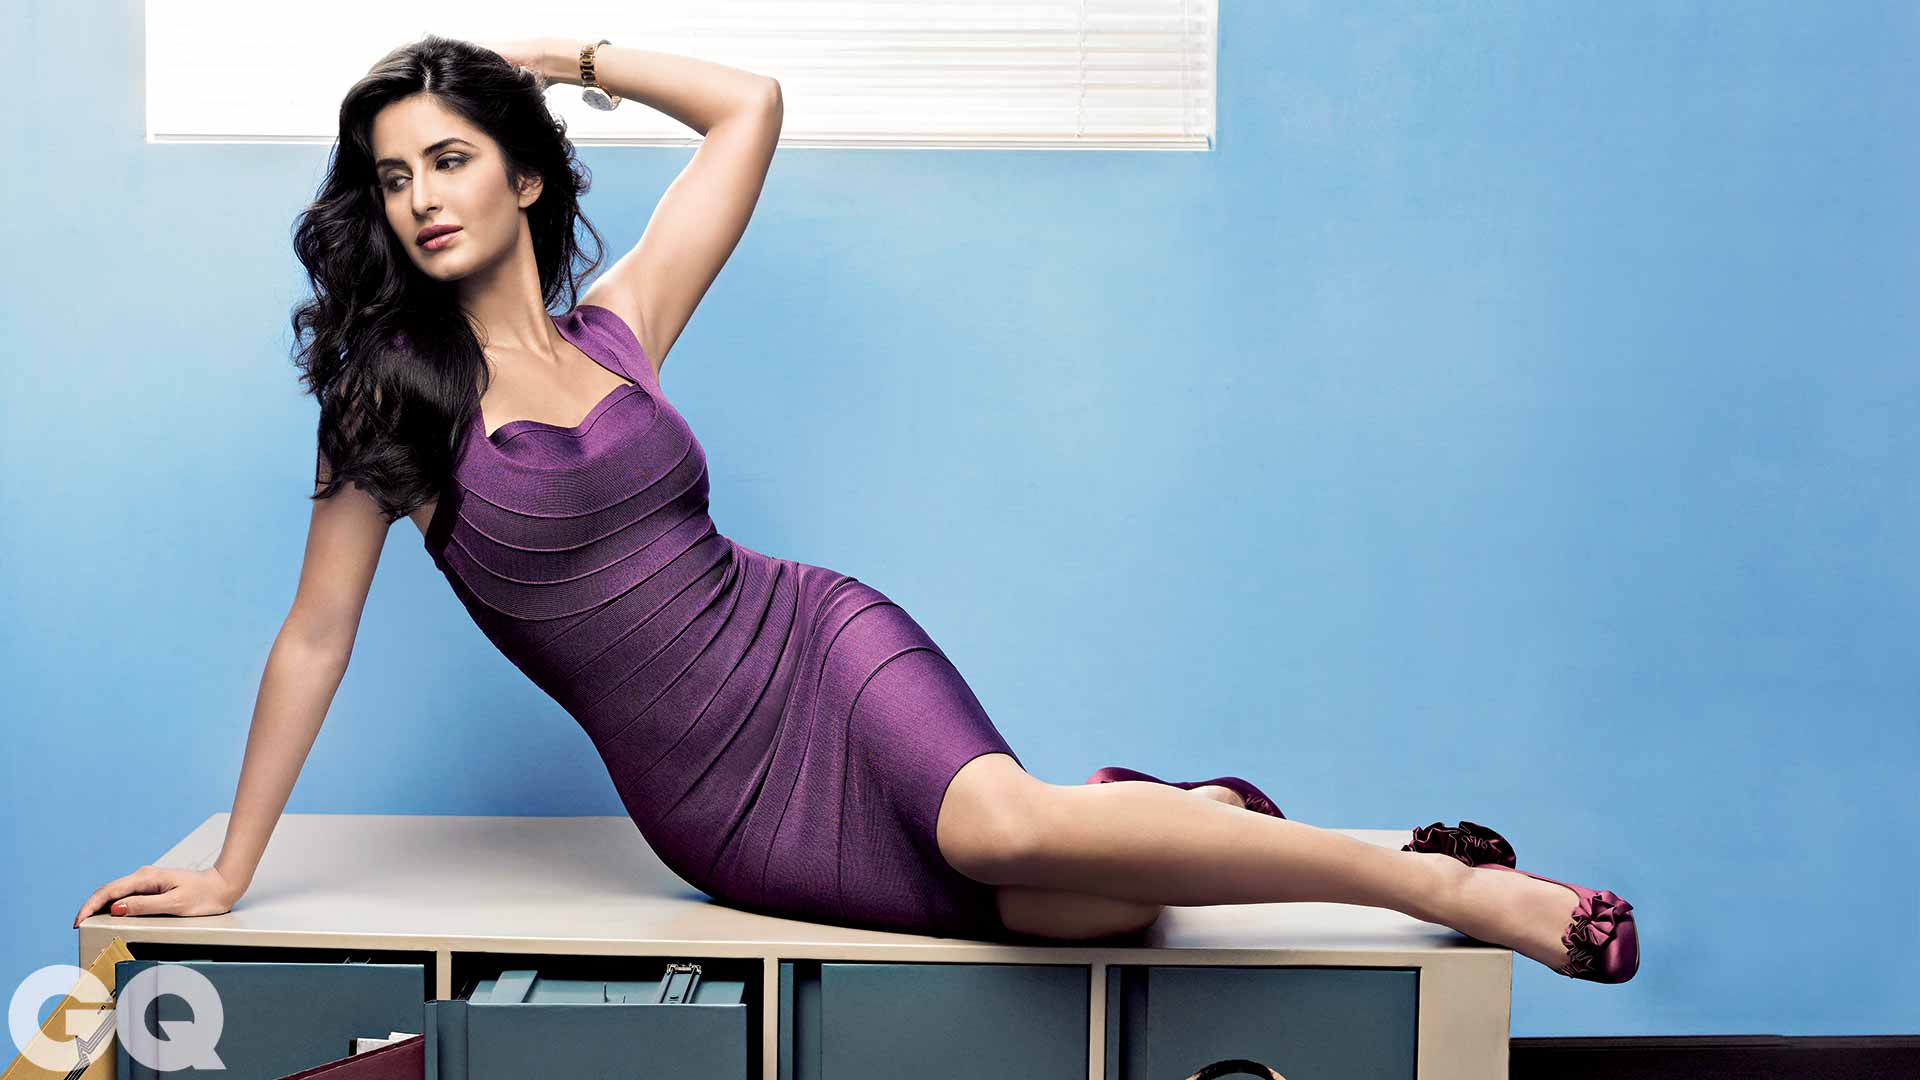 katrina kaif gq hd indian celebrities 4k wallpapers images